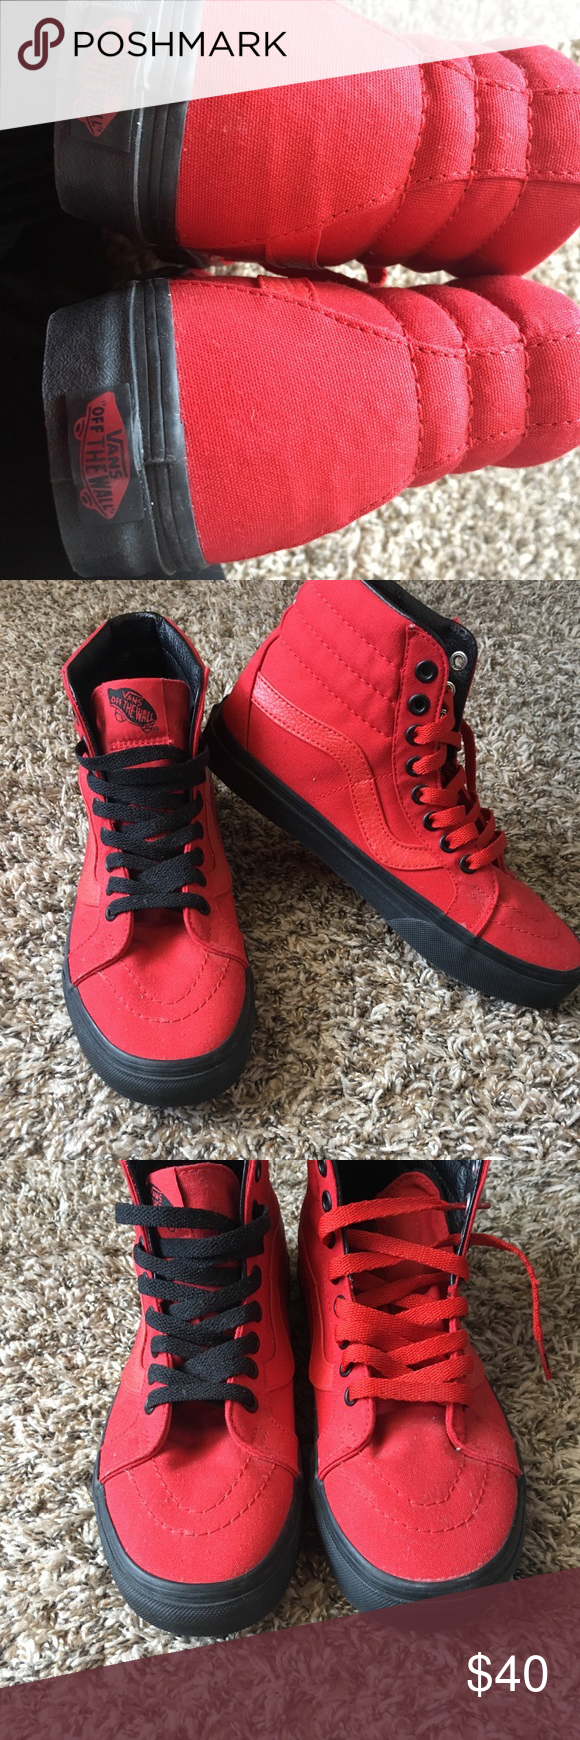 Brand new vans different color laces. Brand new vans they are high tops  size 7.5 women s i changed out the laces are originally black. vans Shoes  Sneakers 8721f9e0f3